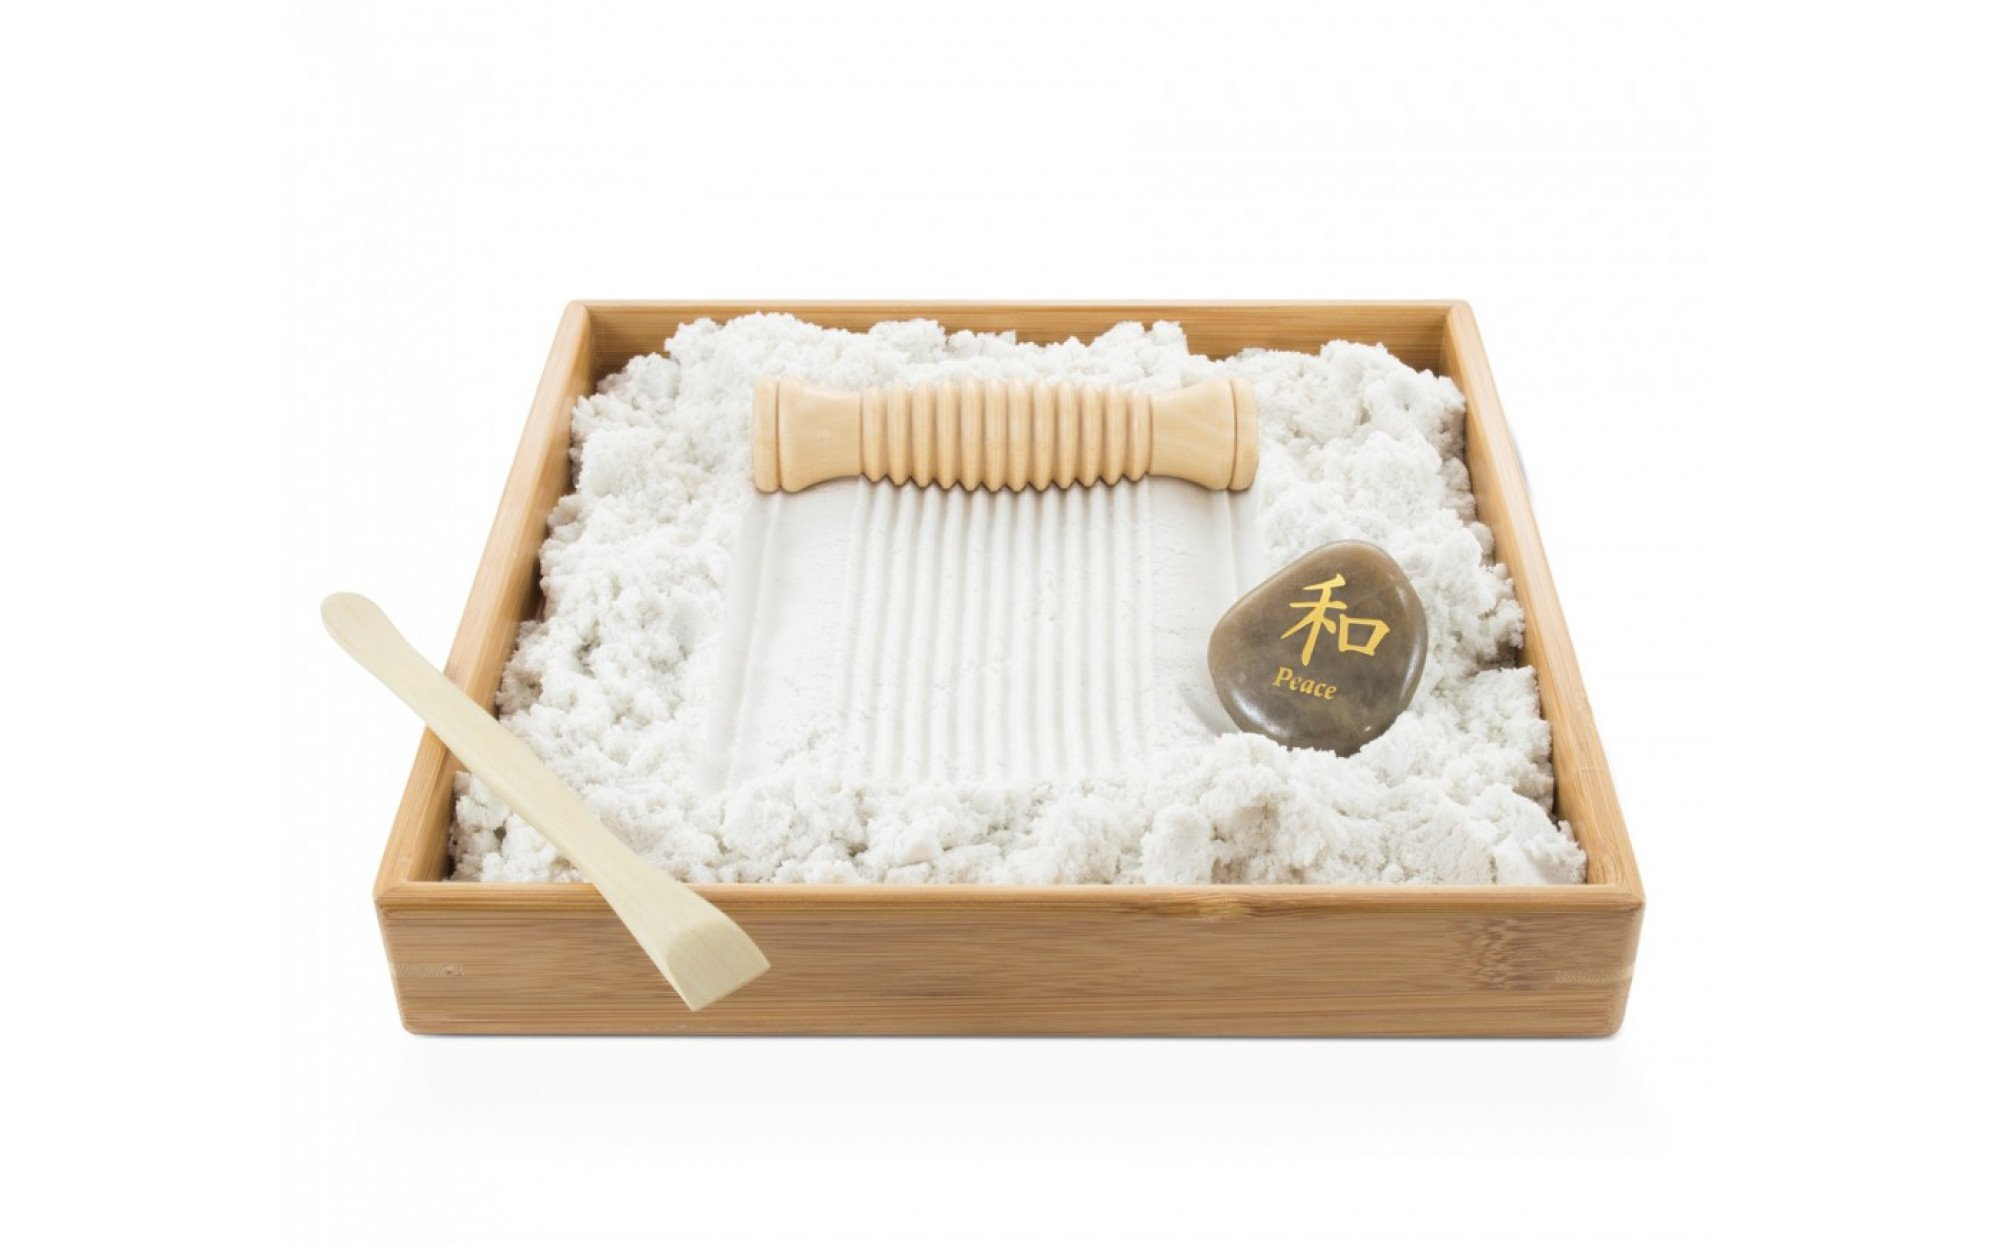 Desktop Zen Sand Tray Inner Reflections Sand Tray Therapy